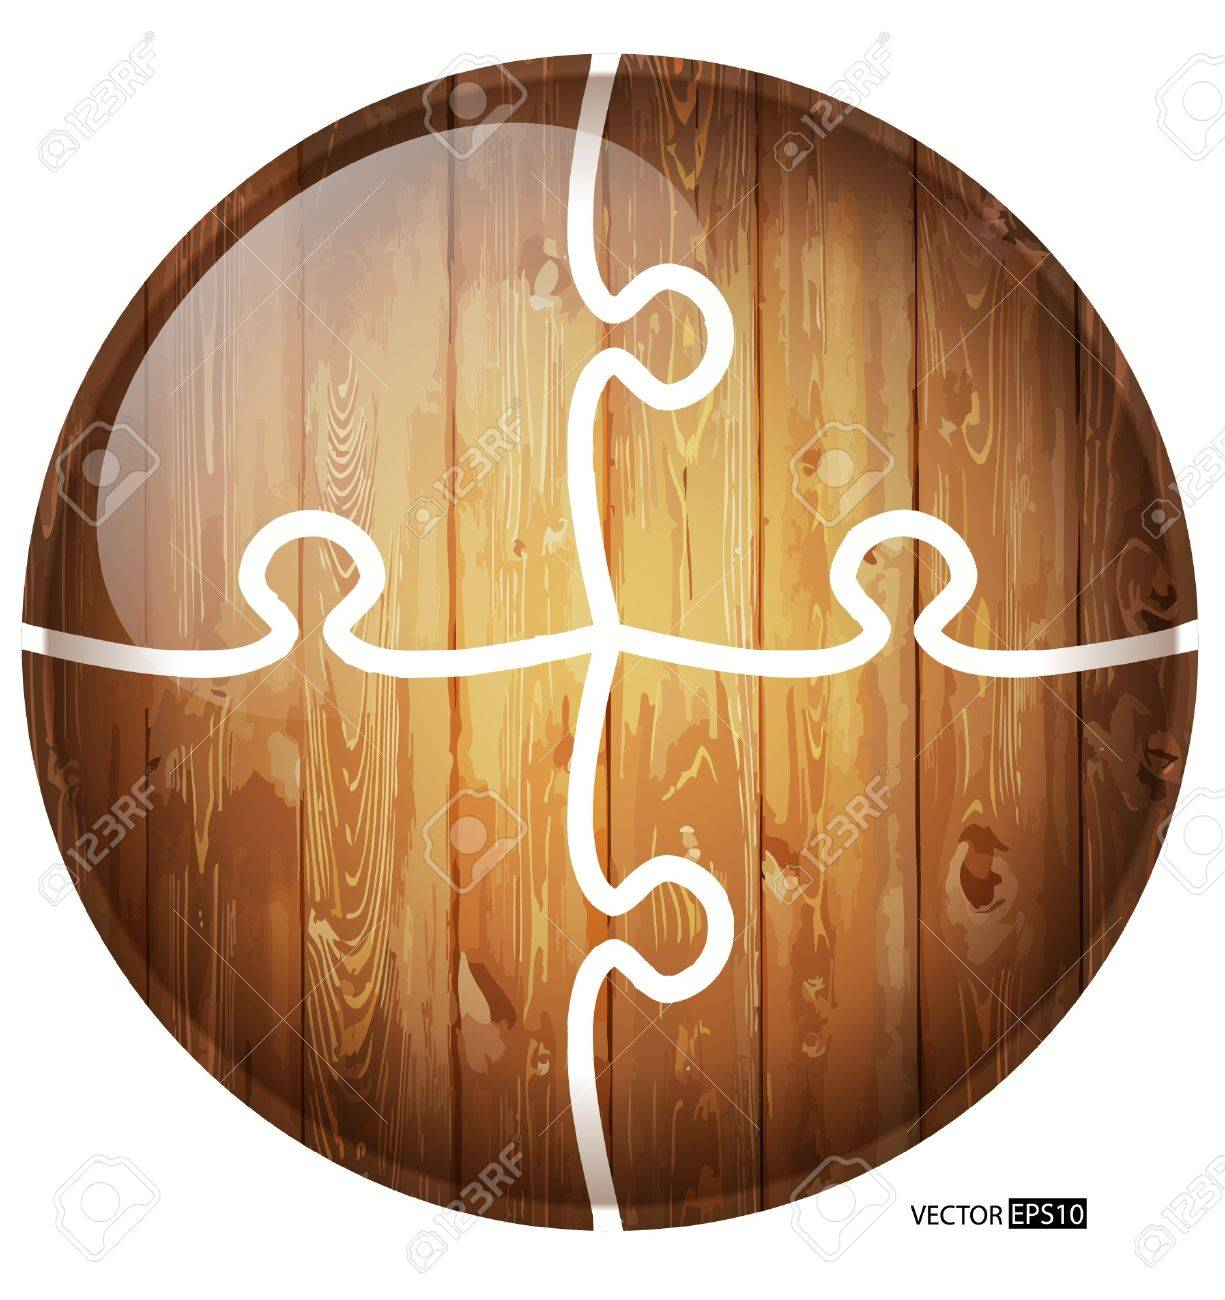 Puzzle circle wooden background Stock Vector - 17330874